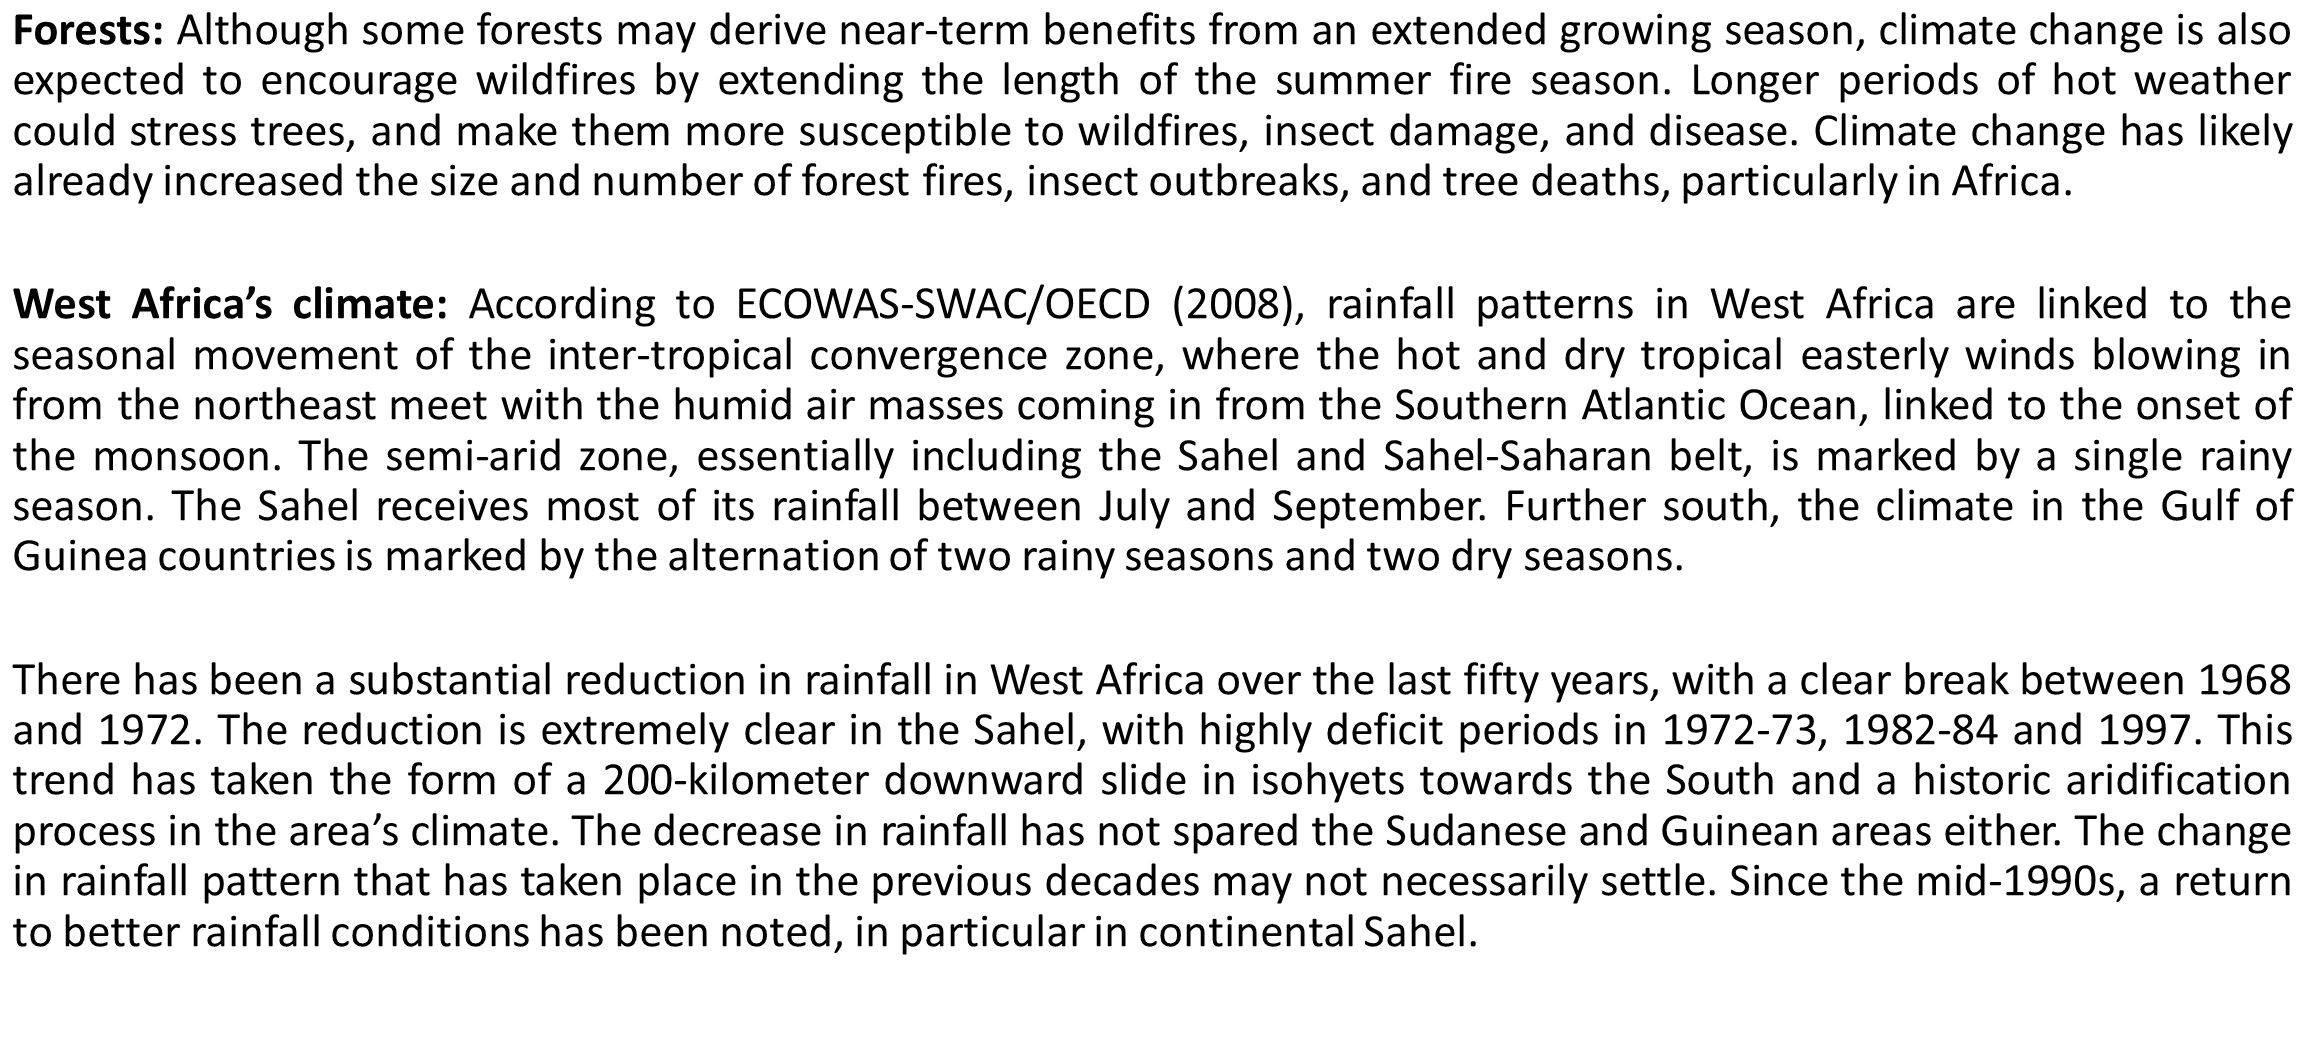 Forests: Although some forests may derive near-term benefits from an extended growing season, climate change is also expected to encourage wildfires by extending the length of the summer fire season. Longer periods of hot weather could stress trees, and make them more susceptible to wildfires, insect damage, and disease. Climate change has likely already increased the size and number of forest fires, insect outbreaks, and tree deaths, particularly in Africa.